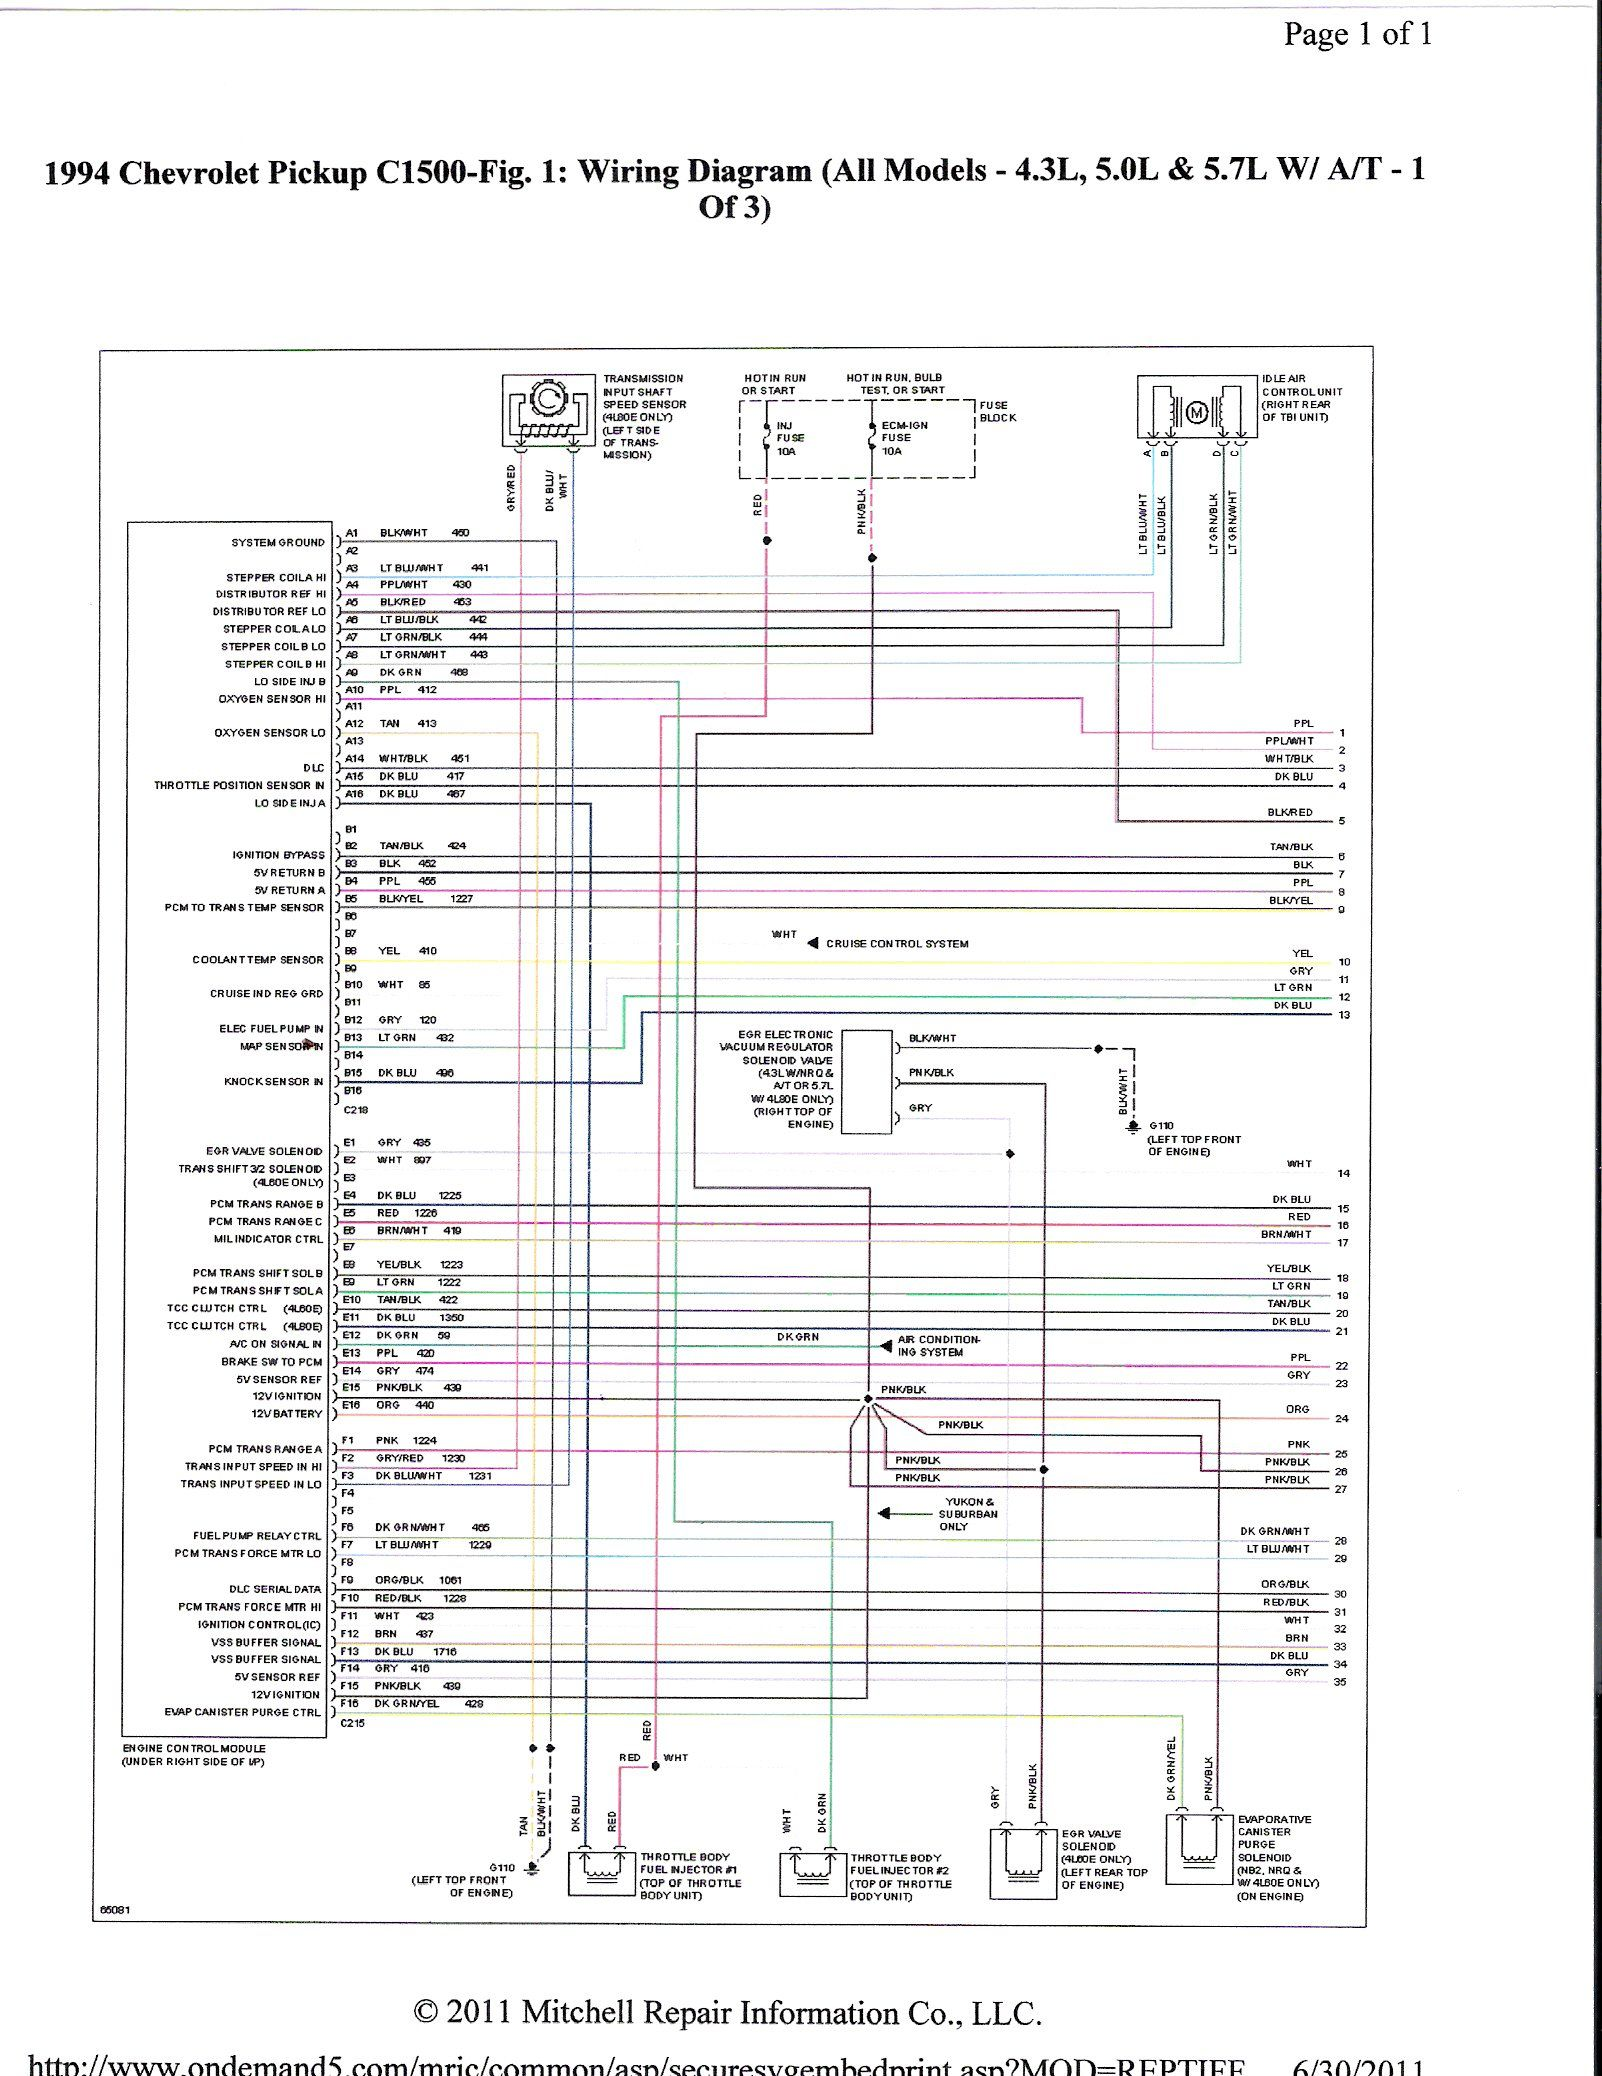 medium resolution of 1994 c1500 wiring diagram wiring diagram forward 1994 chevrolet c1500 wiring diagram 1994 c1500 wiring diagram